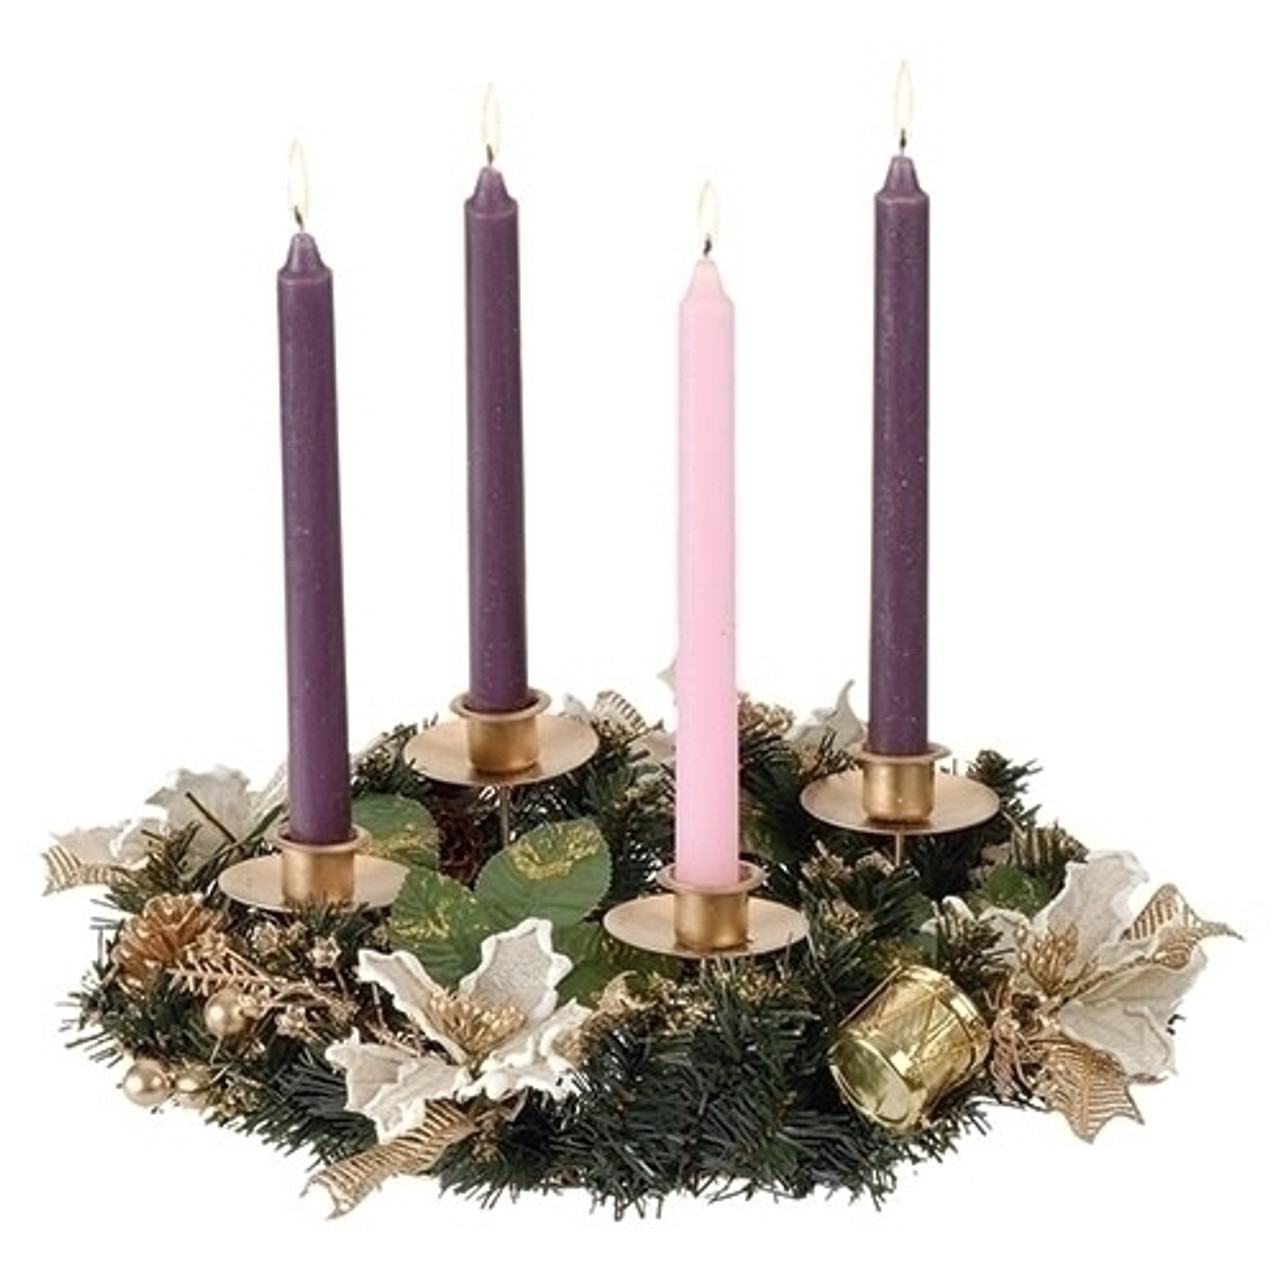 Sold Out Ivory Poinsettia Advent Wreath Pine Gold Berries Metal Frame 12 F C Ziegler Company